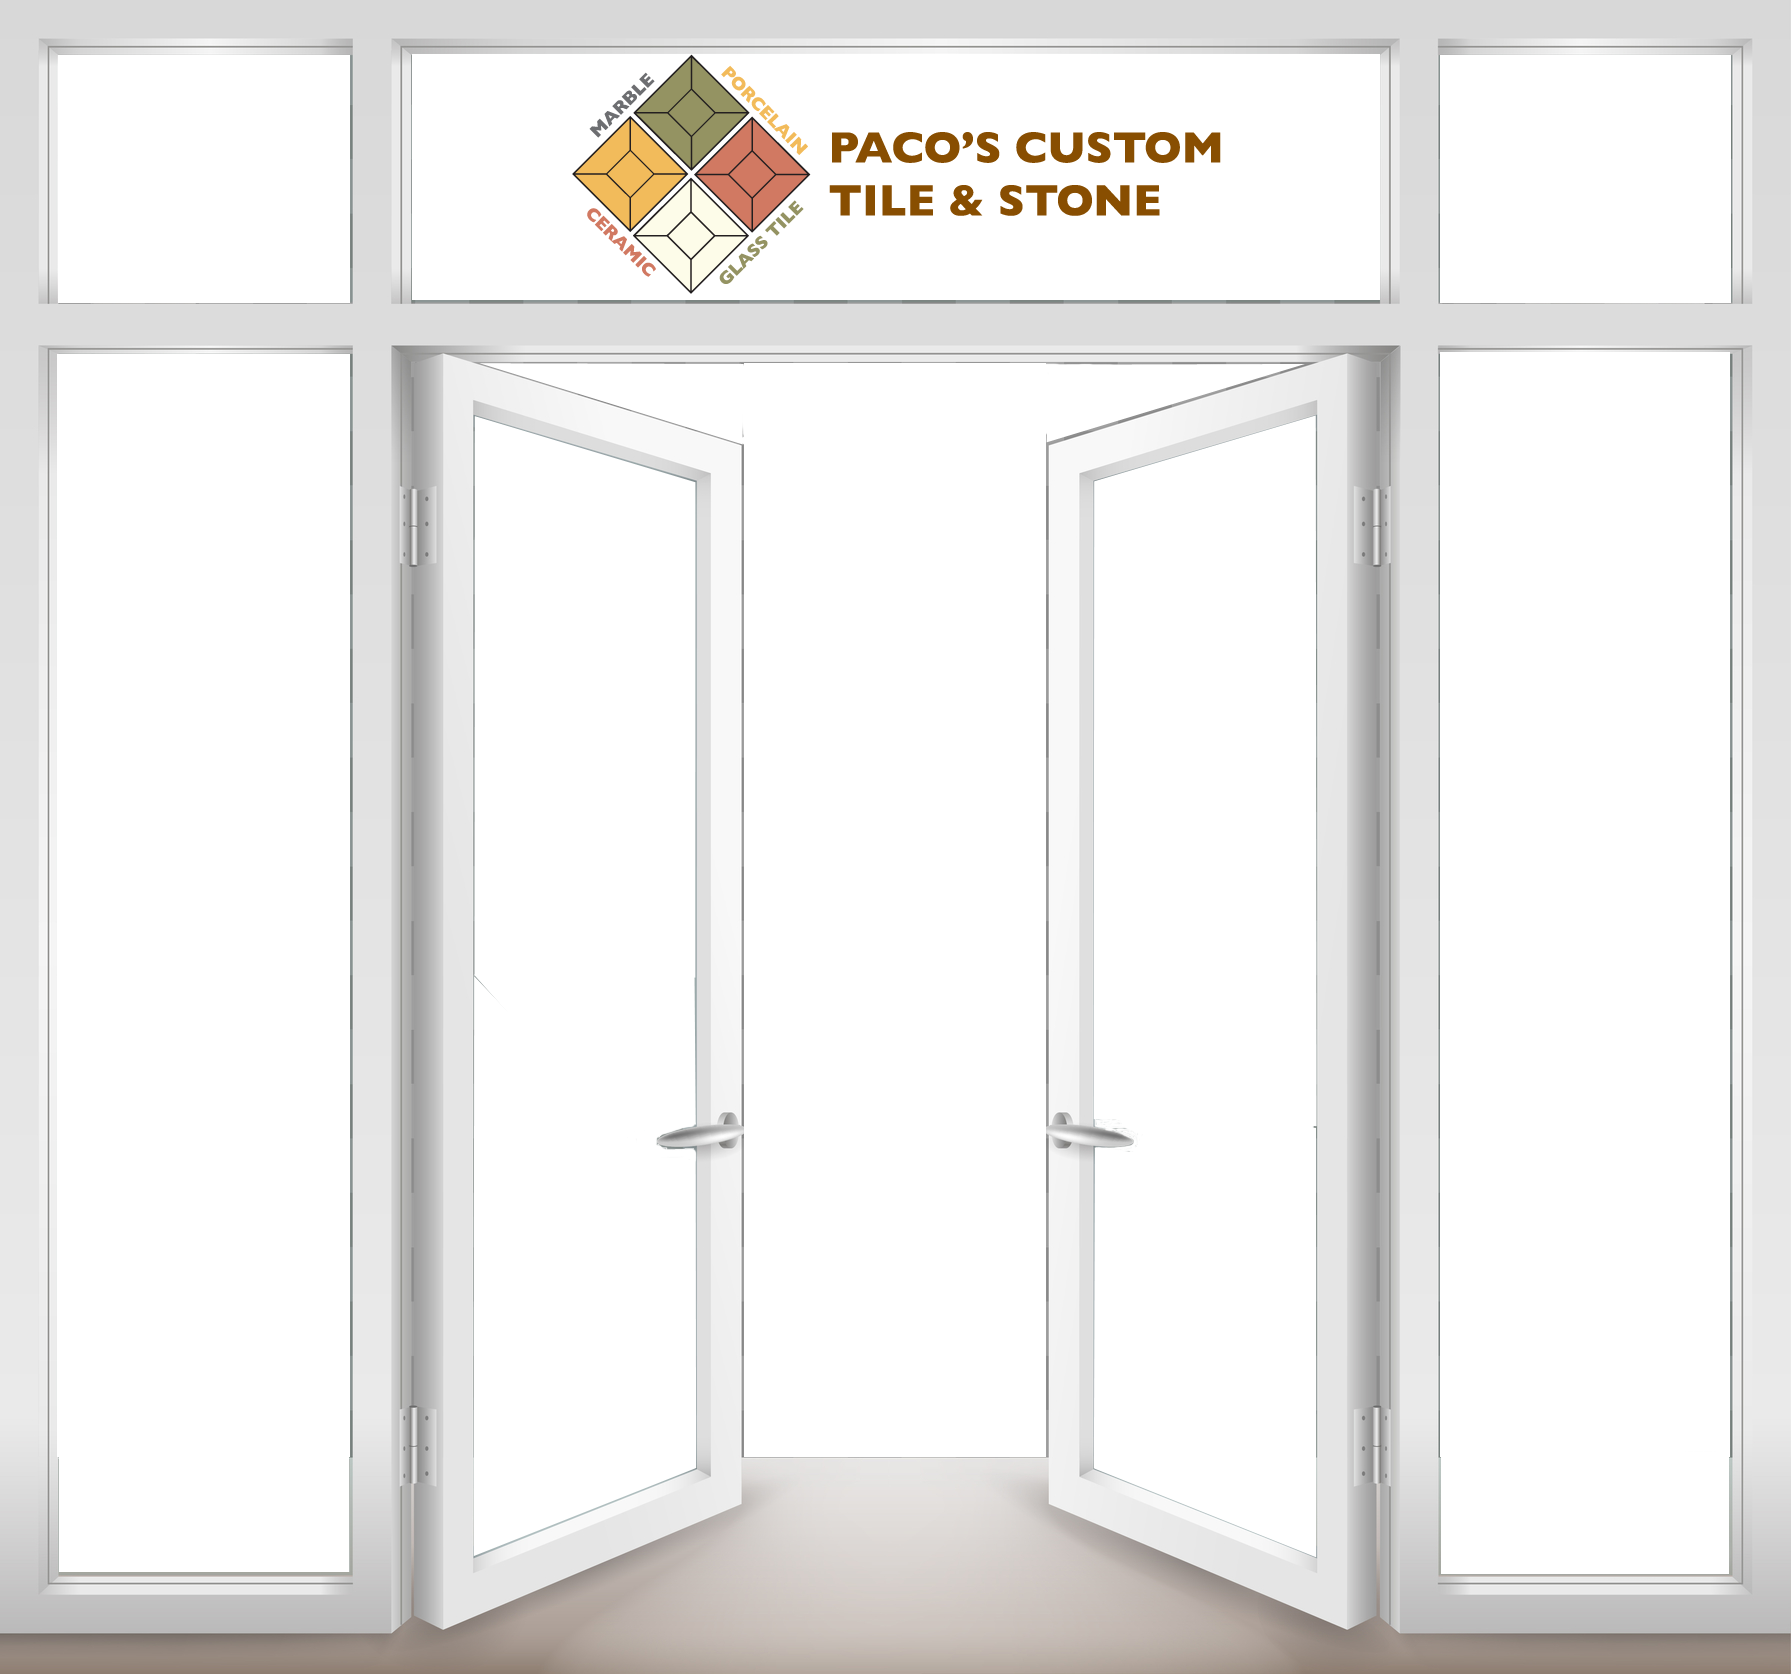 Welcome to Paco Tile & Flooring Gallery | Paco's Tile & Stone